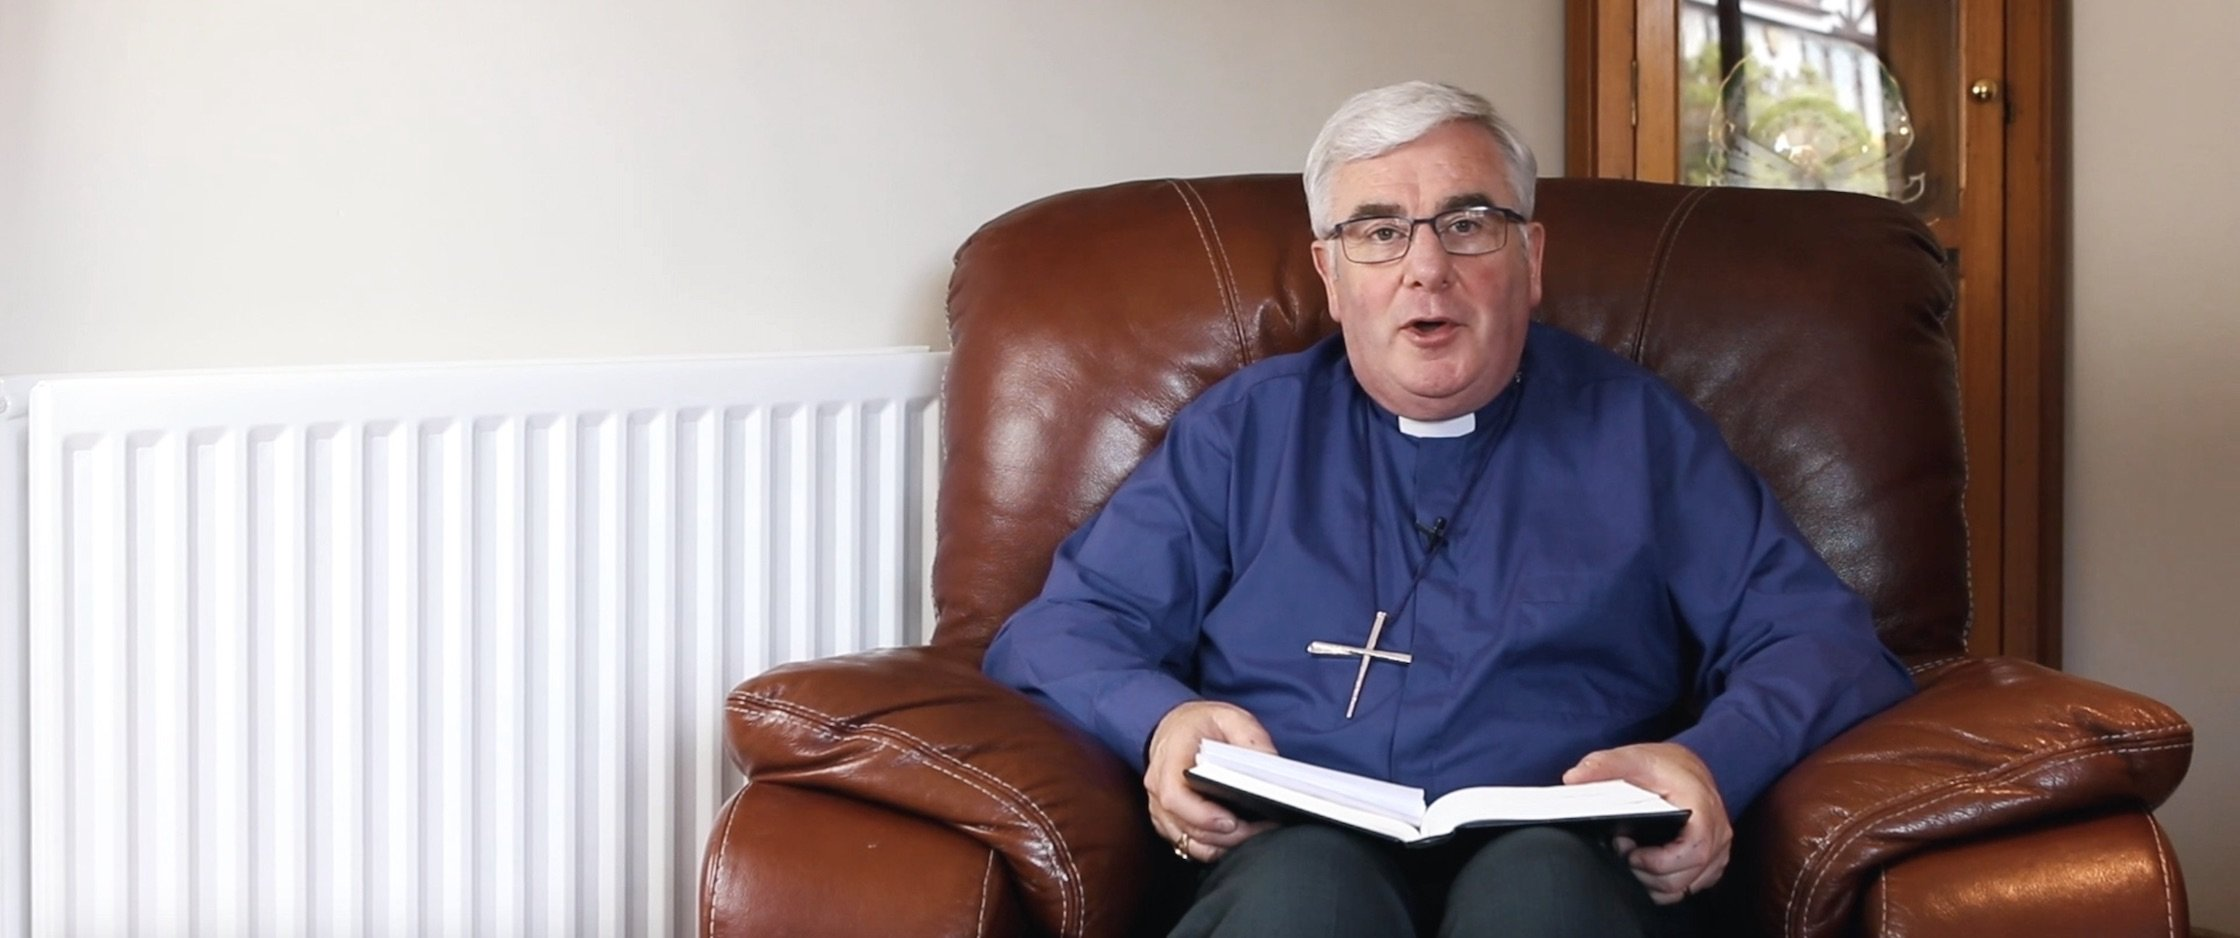 Bishop David shares a message for the men of the diocese